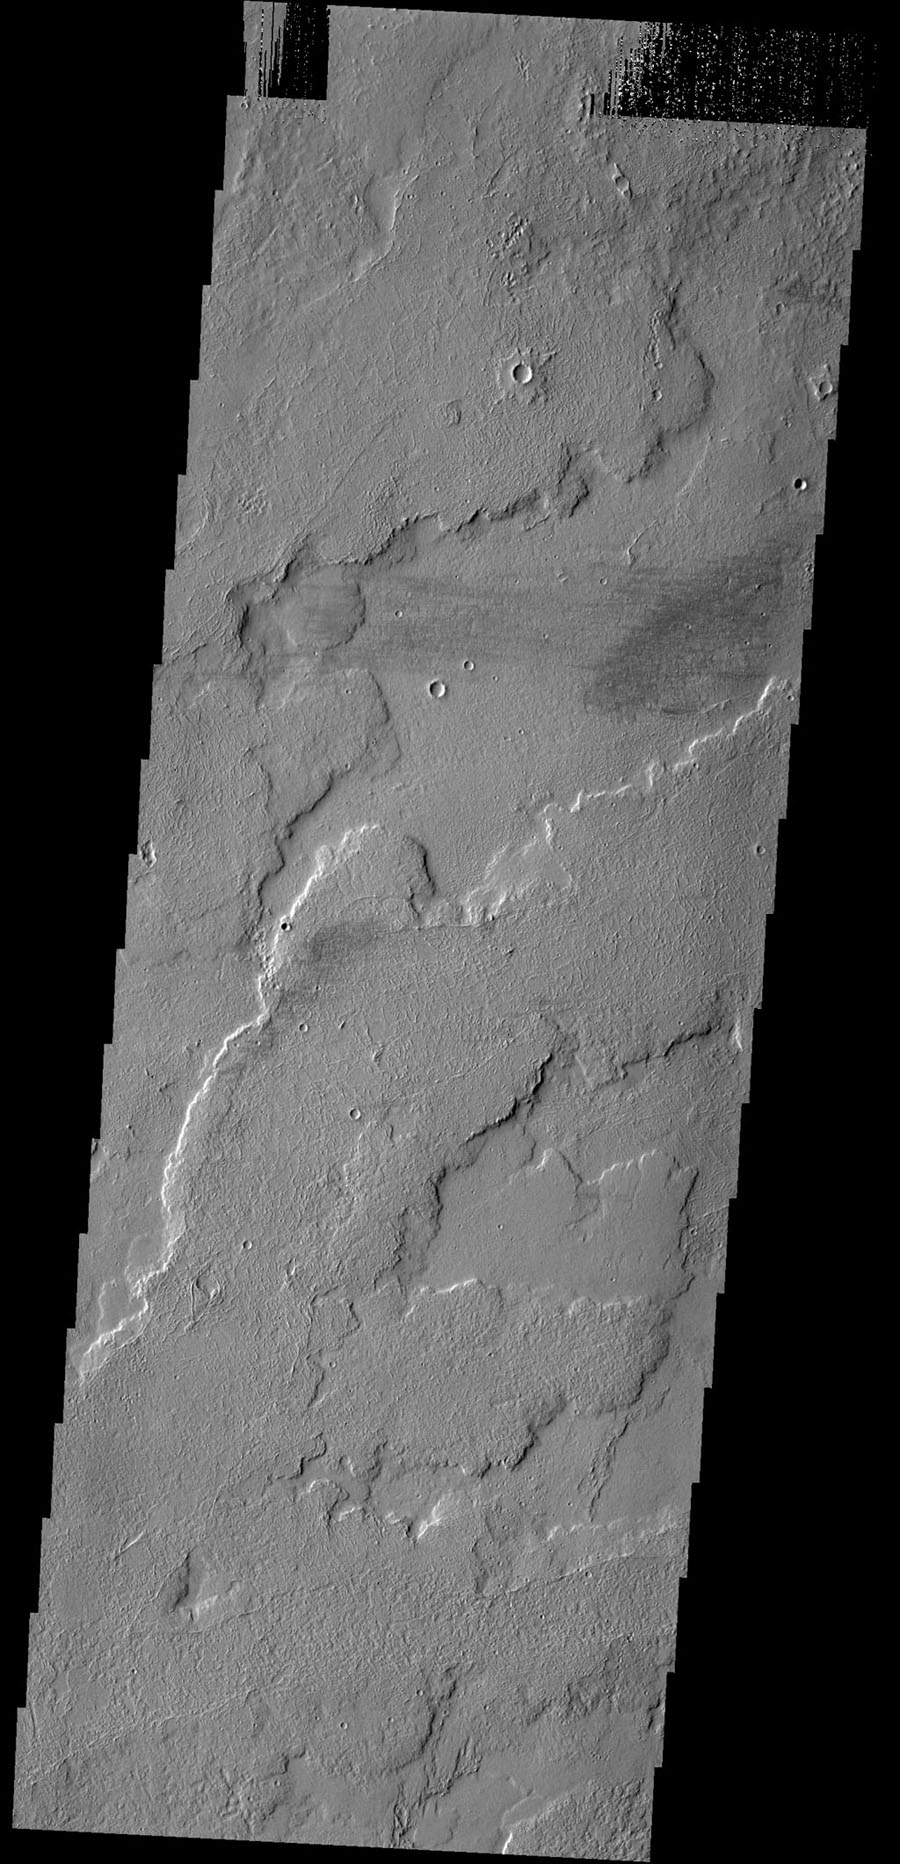 This image shows a small portion of the extensive lava flows created by the large Tharsis volcanoes as seen by NASA's 2001 Mars Odyssey spacecraft. These flows are located north east of Ascraeus Mons.